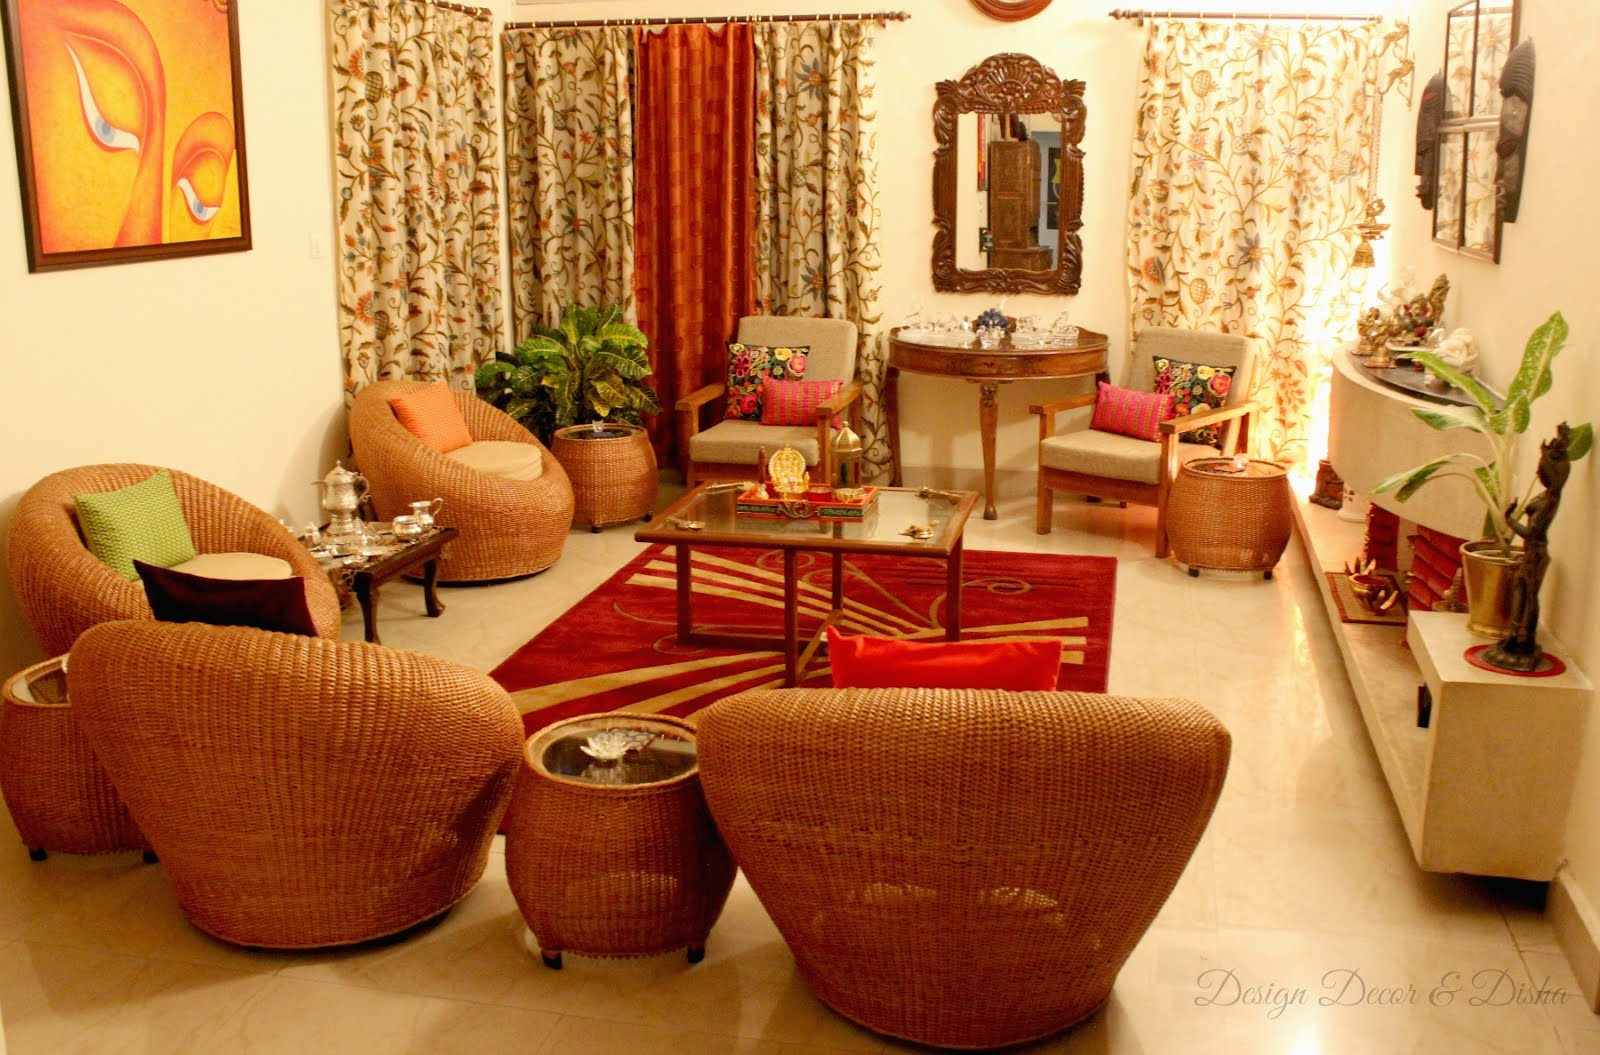 Hot on Instagram 🔥 Indian Home Décor Ideas To Bring To The West! indian Hot on Instagram 🔥 Indian Home Décor Ideas To Bring To The West! 2 9